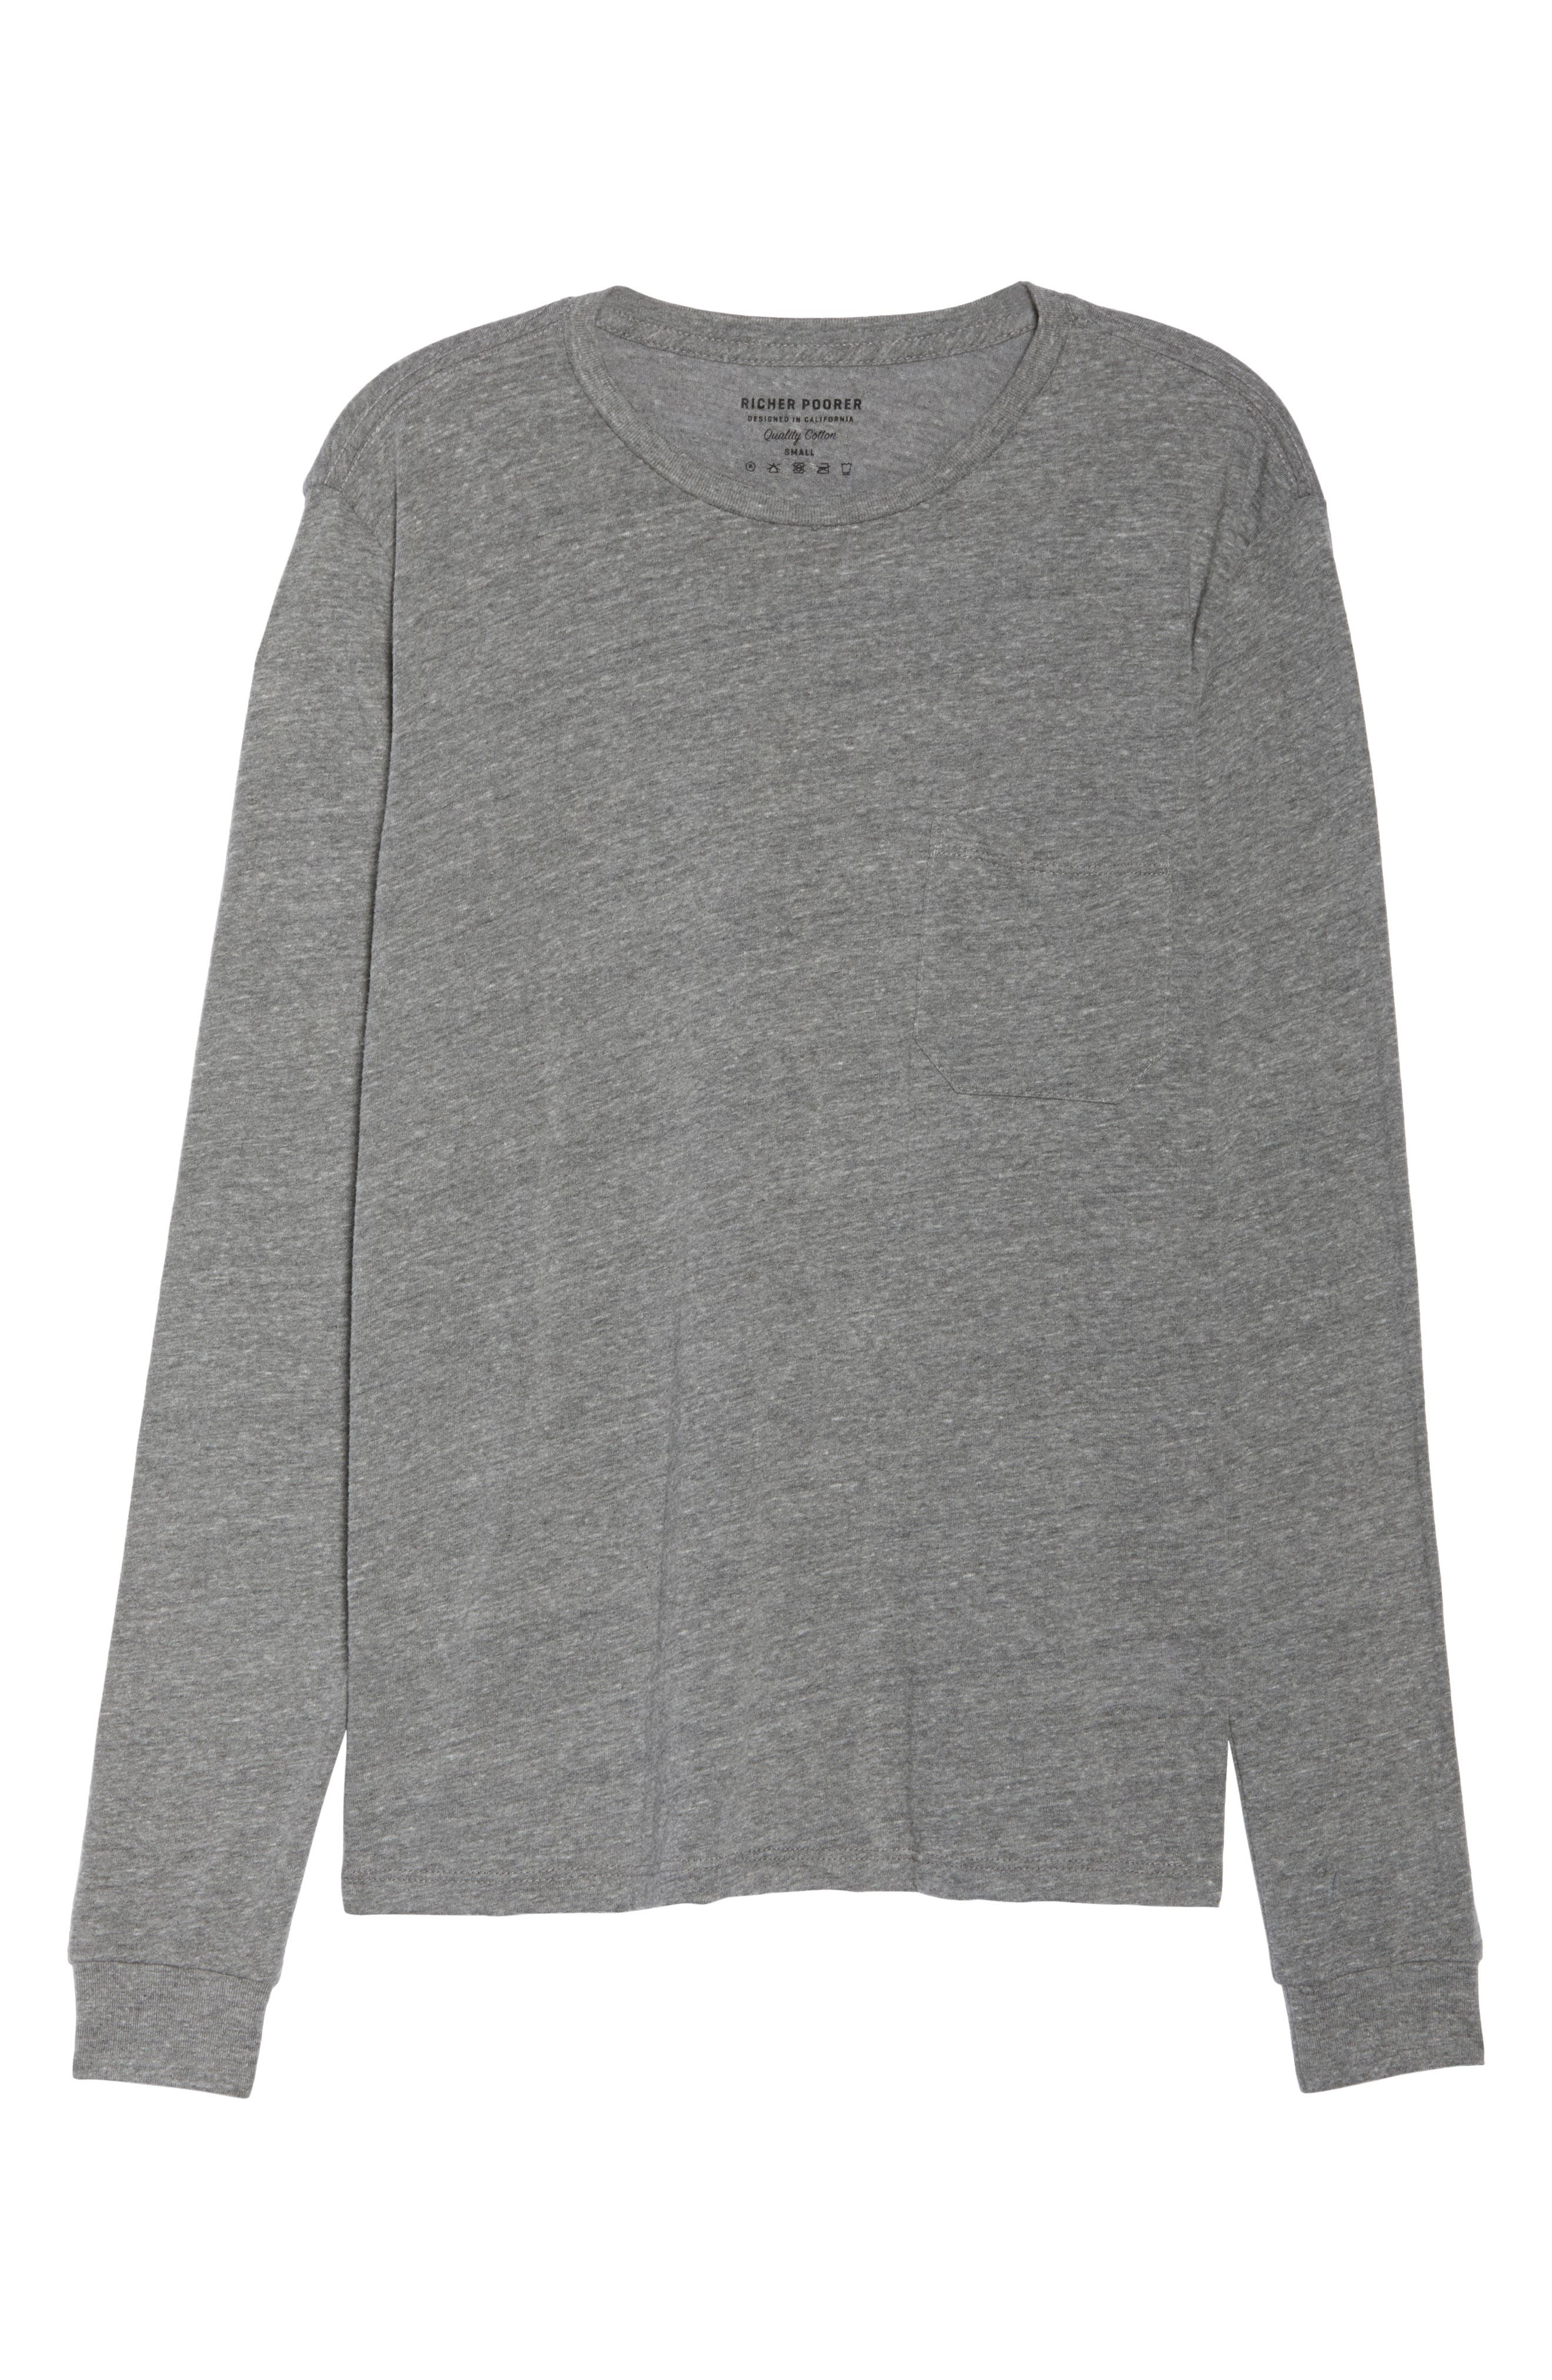 Long Sleeve Pocket Tee,                             Alternate thumbnail 6, color,                             HEATHER GREY